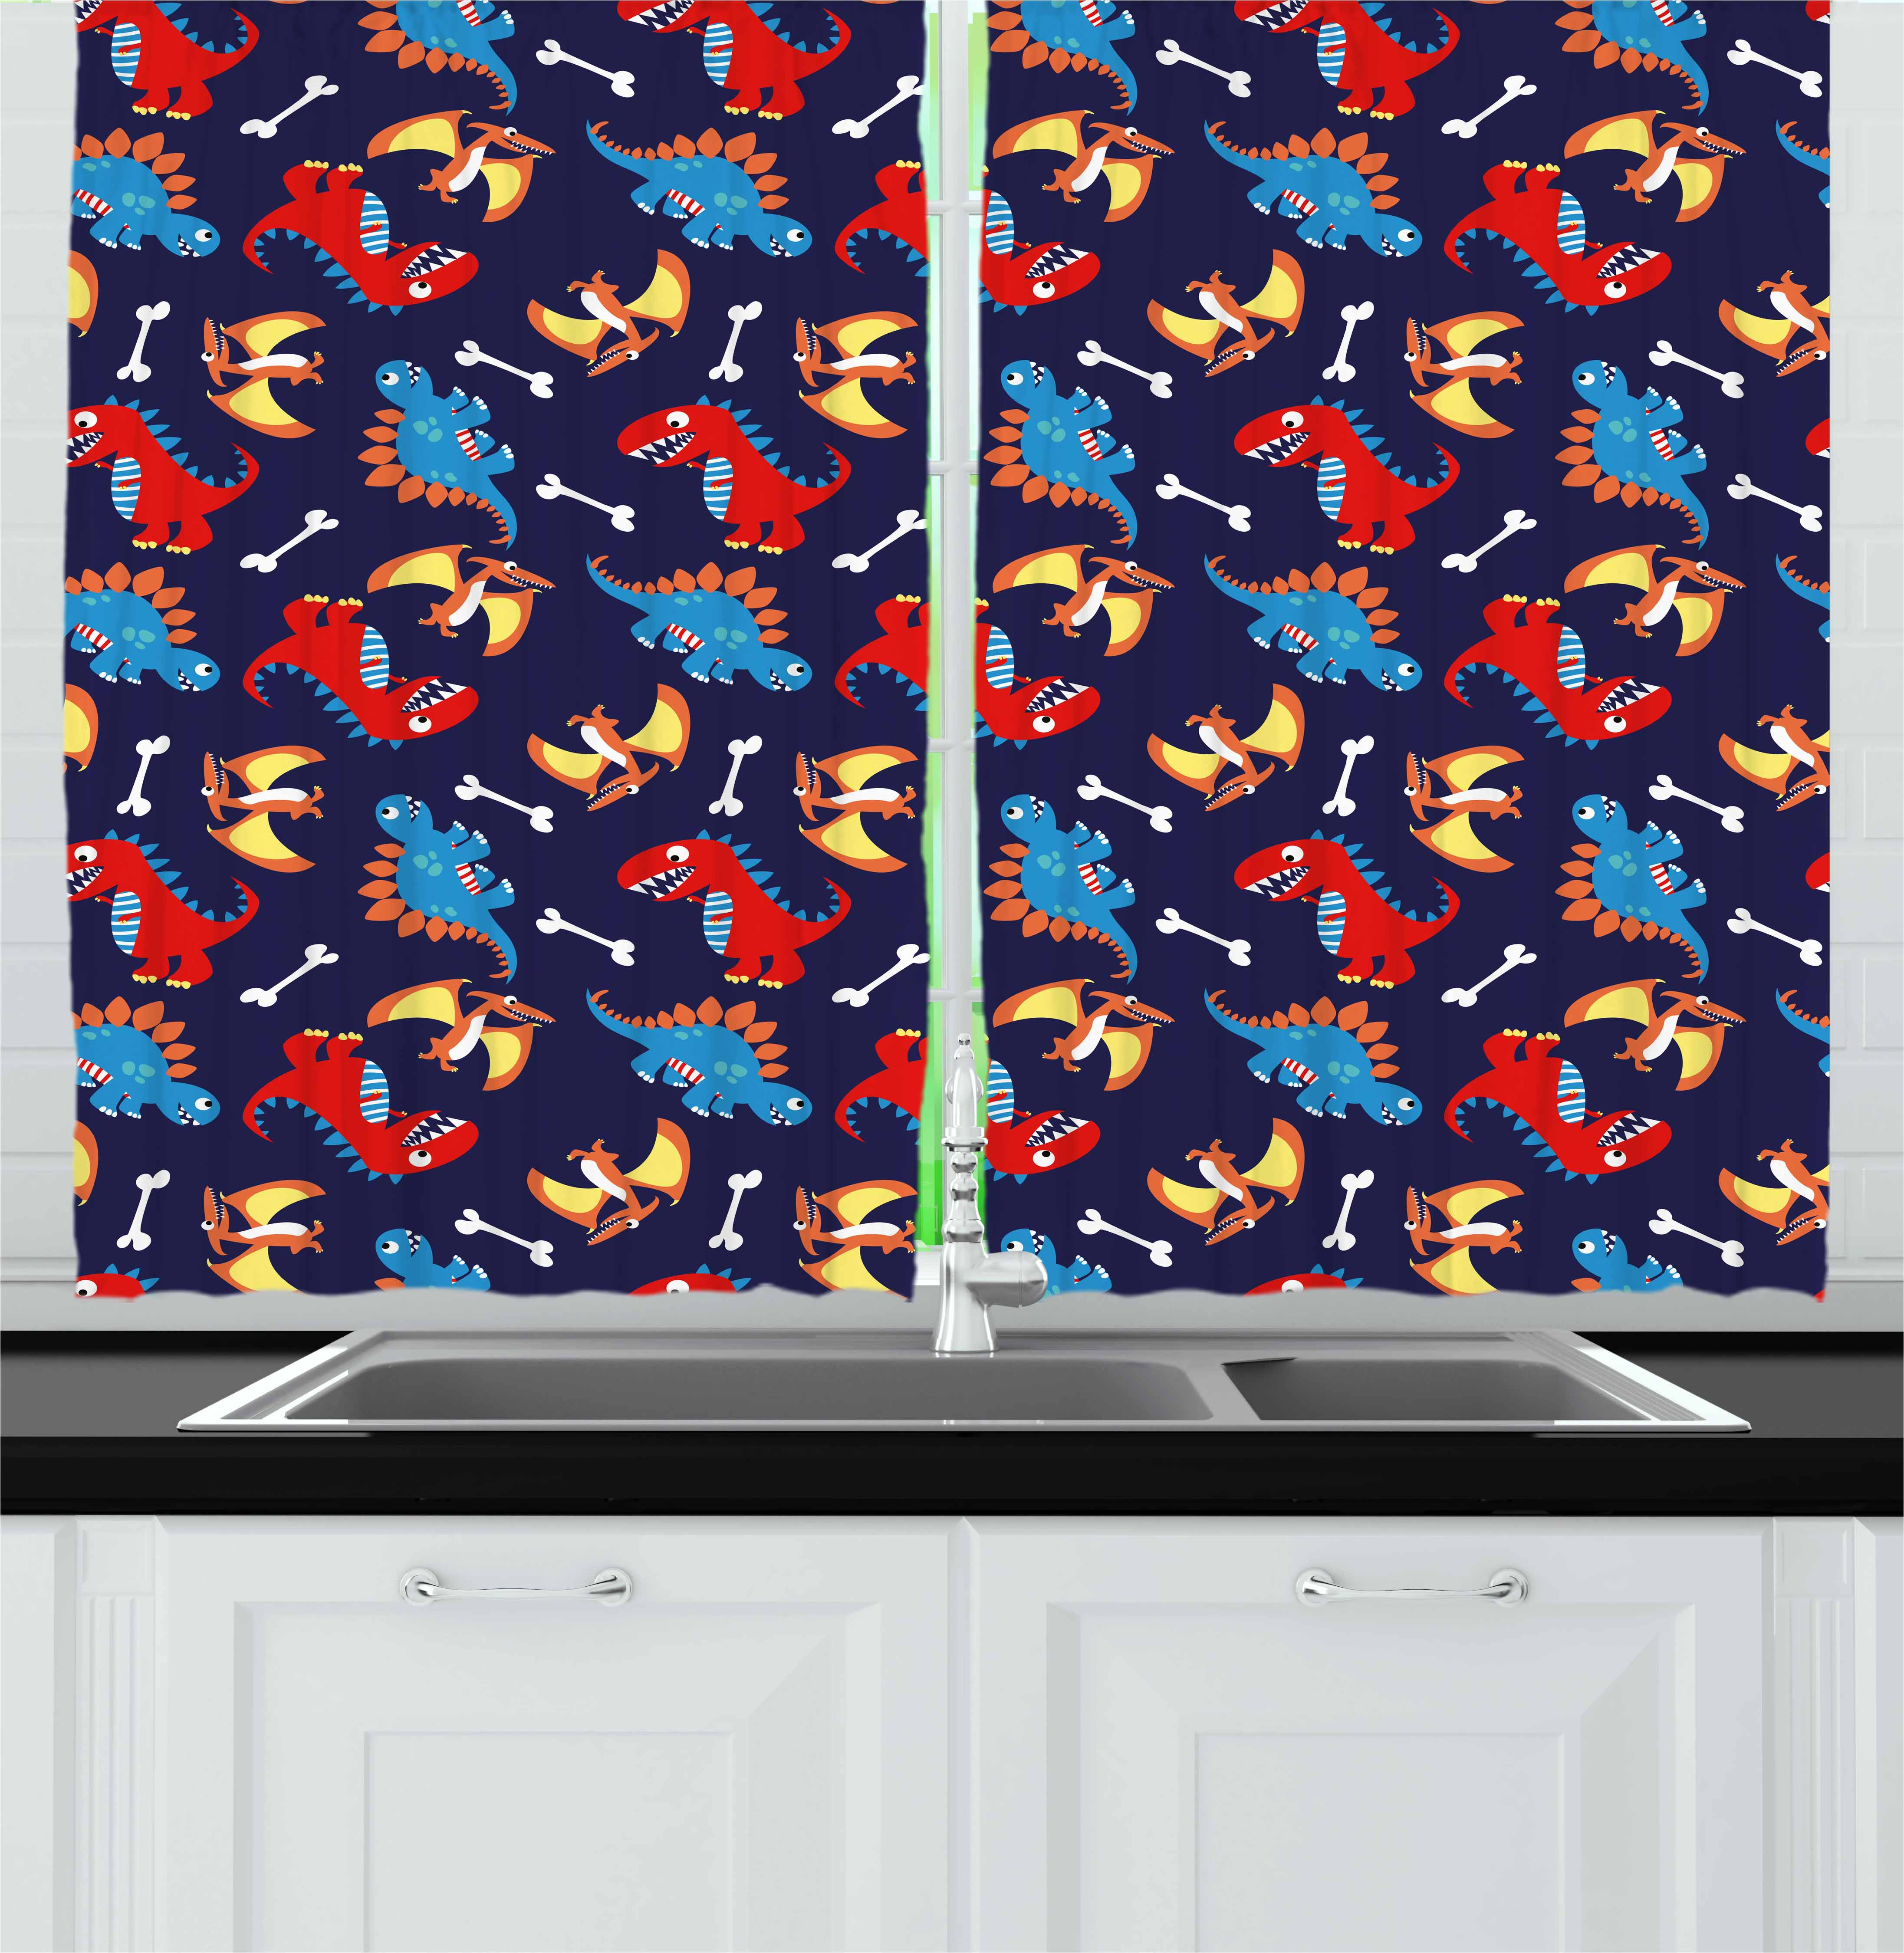 Dinosaur Curtains 2 Panels Set, Three Different Cartoon Dinosaurs Funny Expressions and Bones Kids Theme, Window Drapes for Living Room Bedroom, 55W X 39L Inches, Navy Blue Orange Red, by Ambesonne